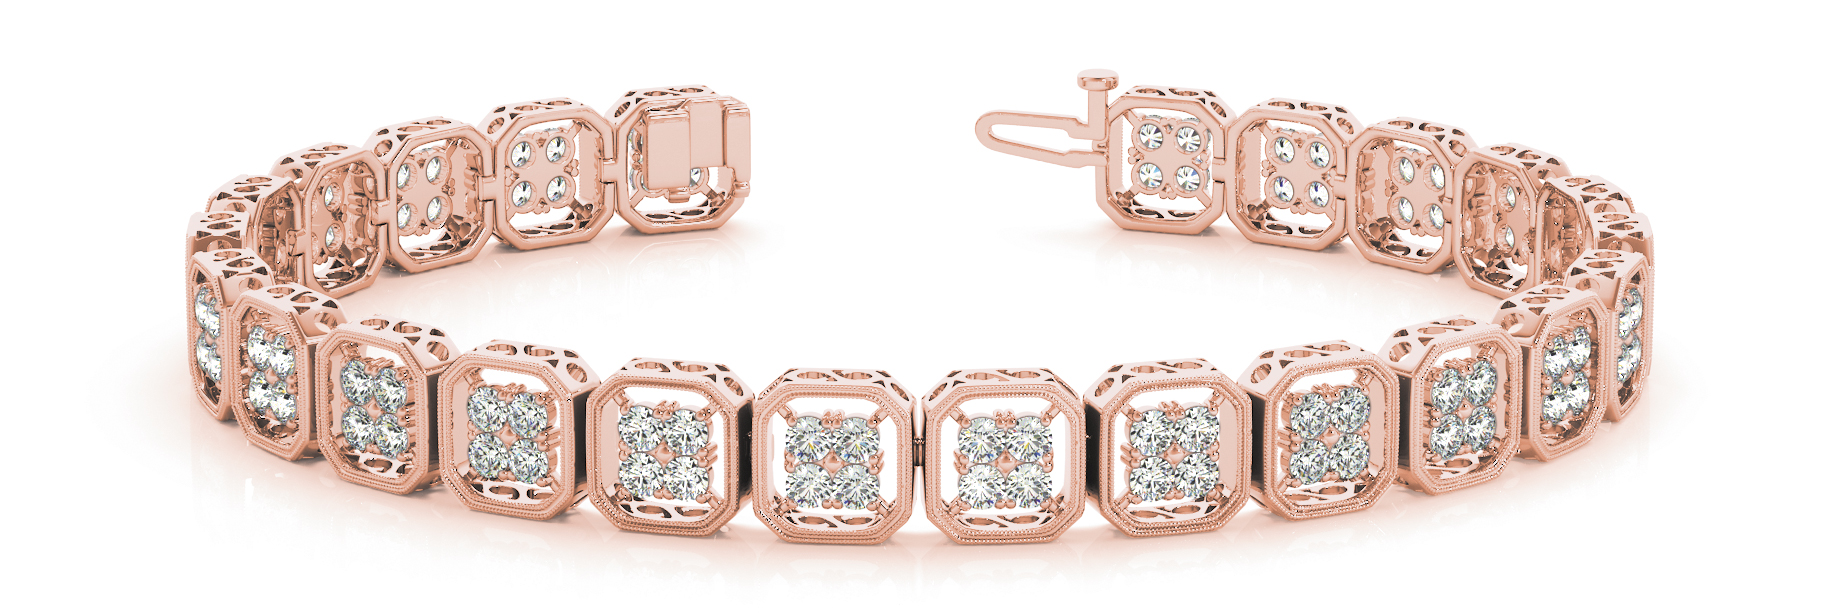 Octagon Cluster Round Diamond Rose Gold Bracelet 2.88 ct.